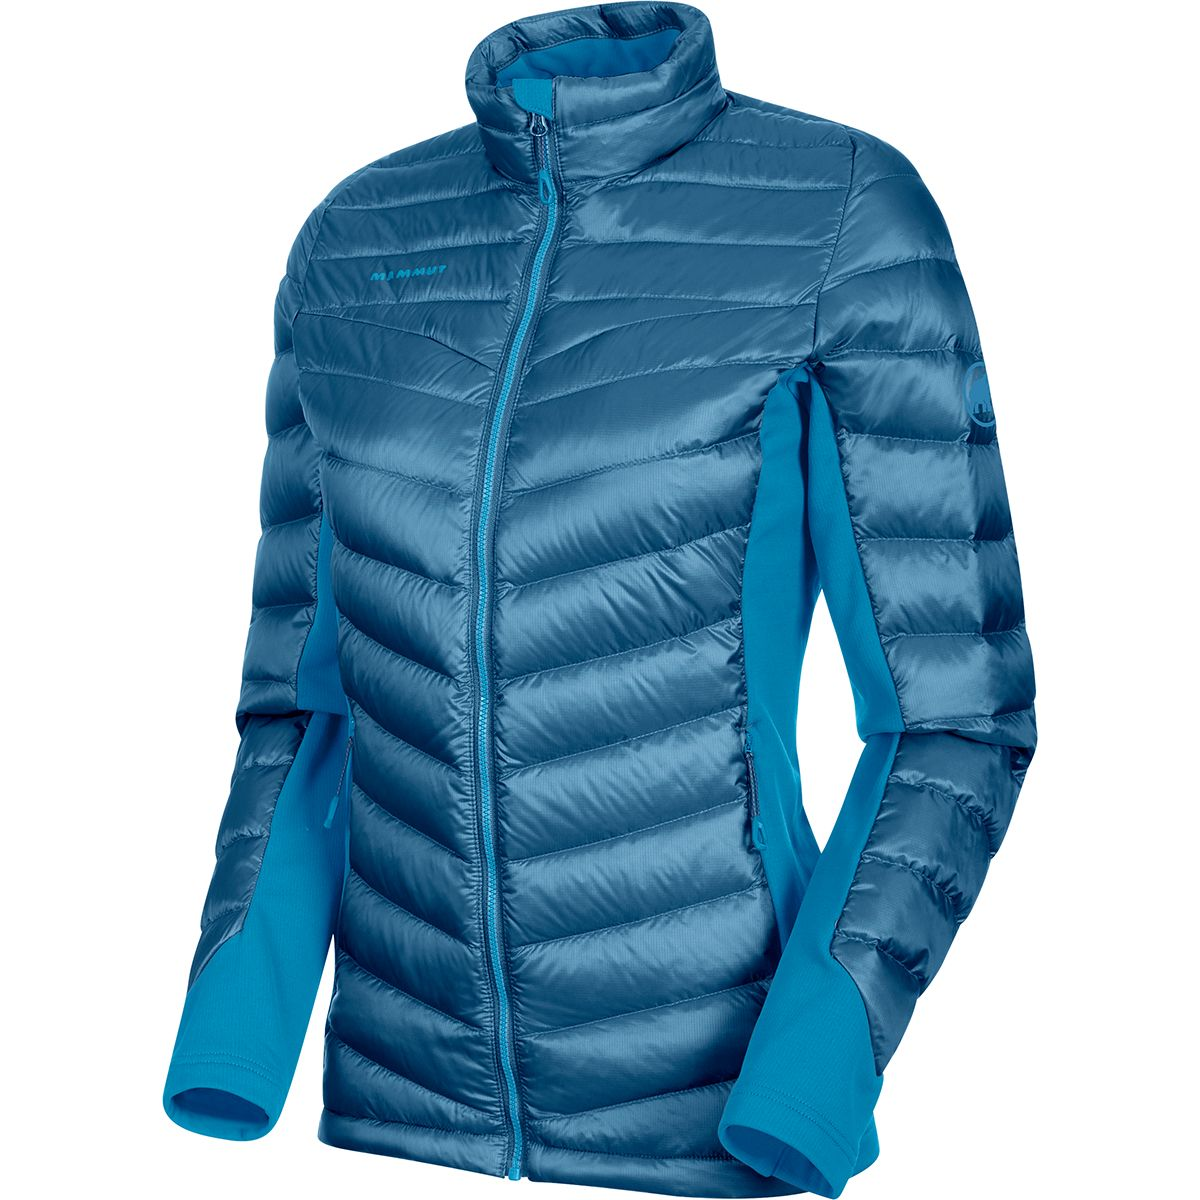 Mammut Damen Flexidown In Jacke (Größe L, Blau) | Isolationsjacken > Damen